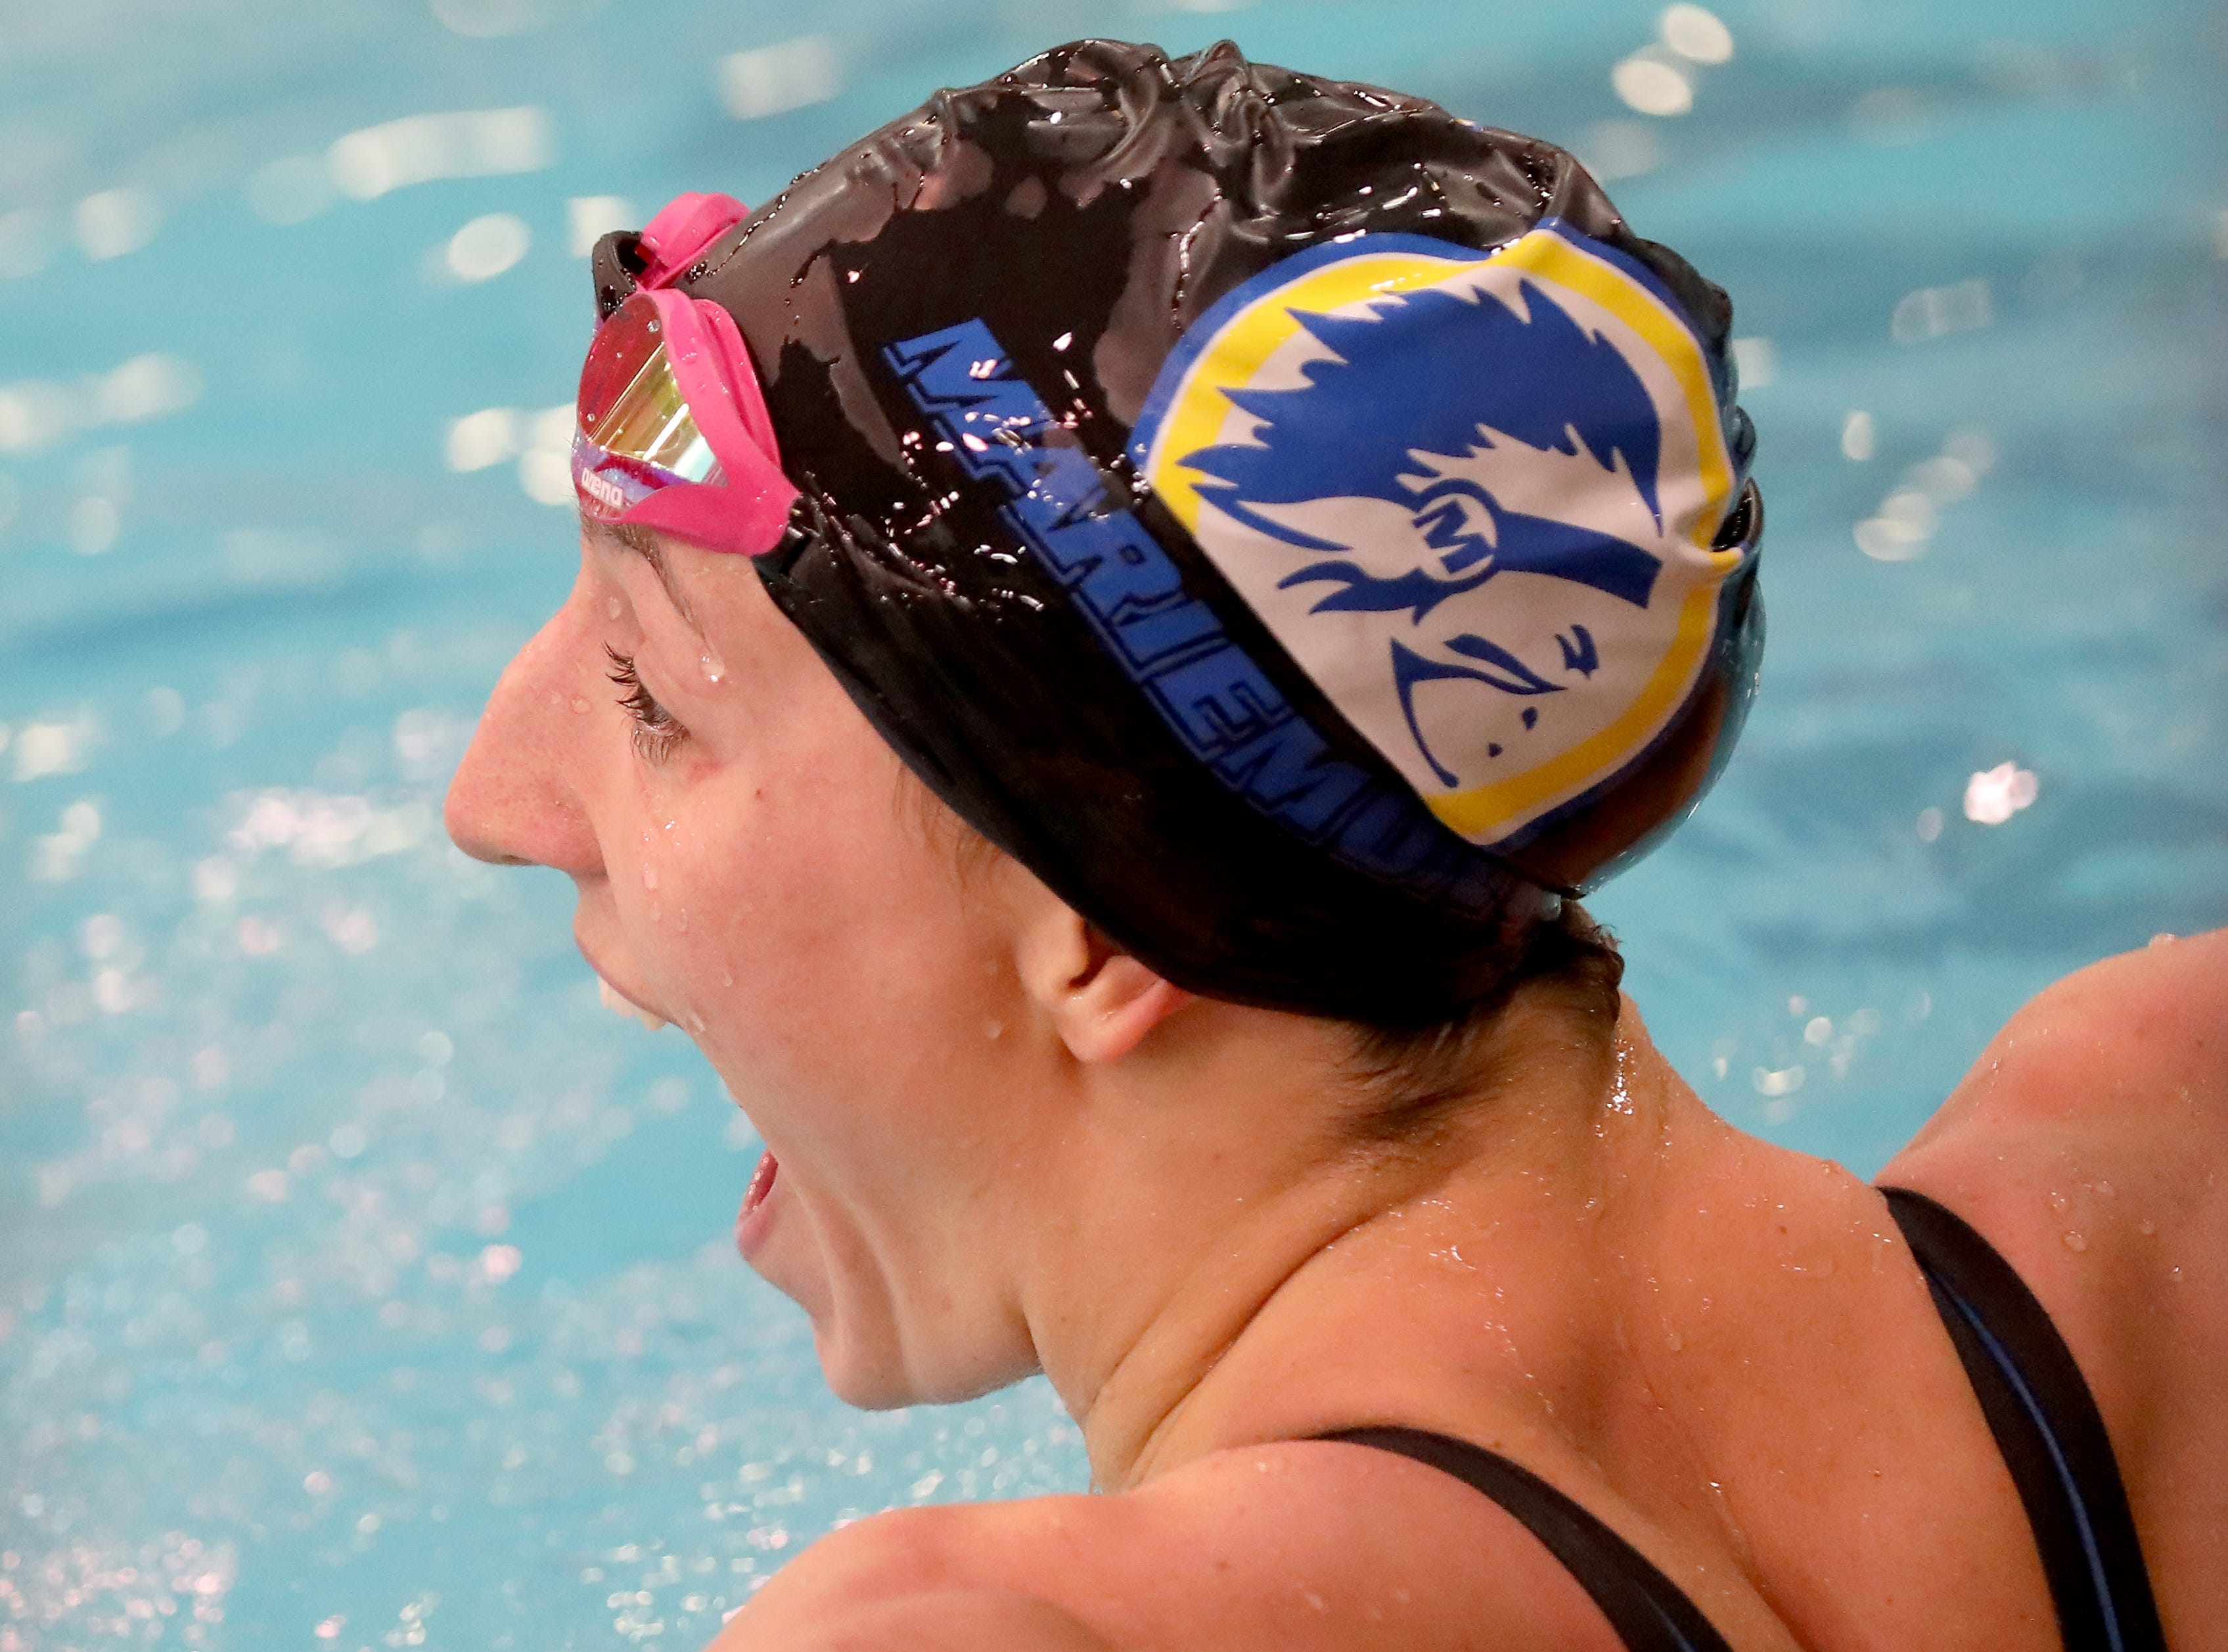 Mariemont swimmer Cora Dupre reacts after winning her second state title at the OHSAA Swimming and Diving Championships in Canton, Ohio, Friday, Feb. 22, 2019